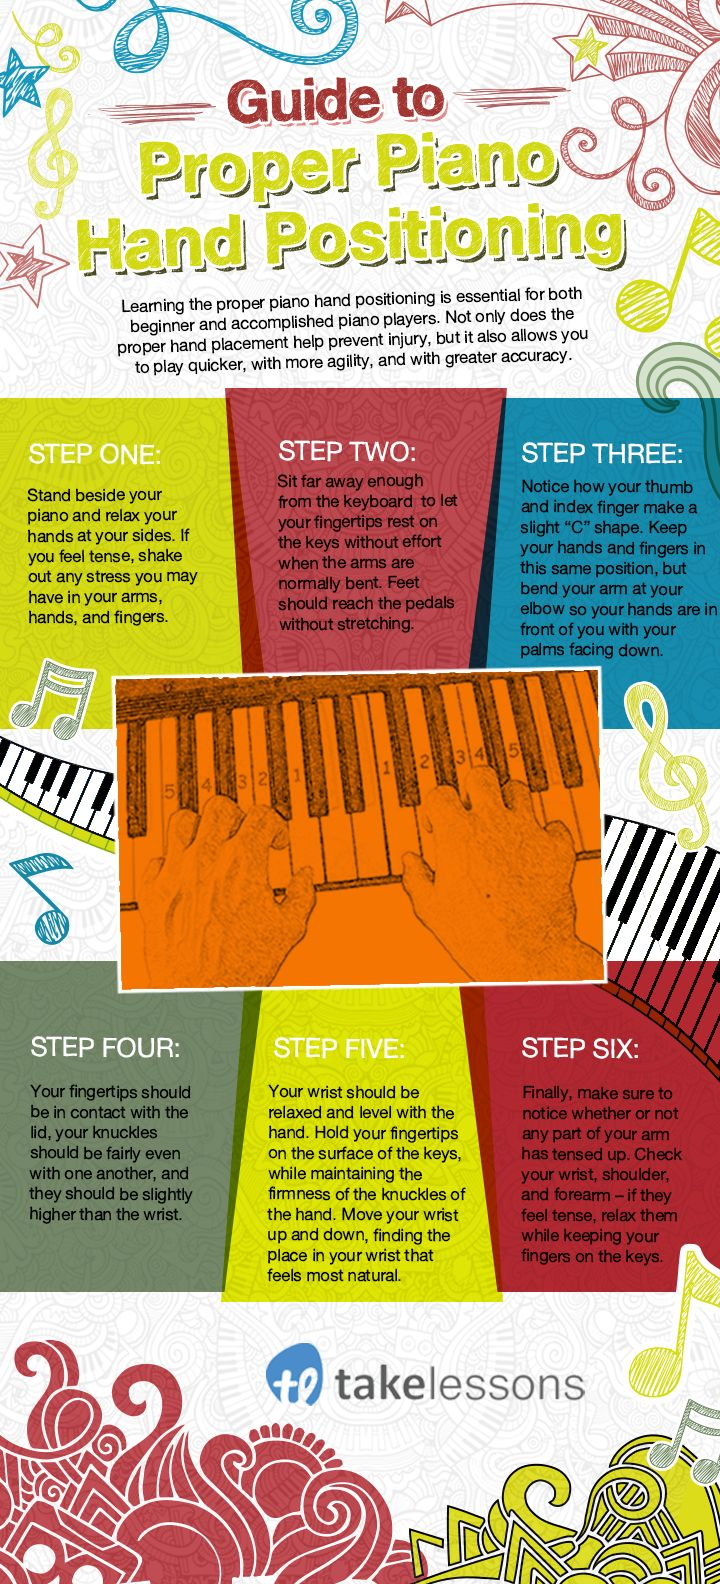 Guide to Proper Piano Hand Position [Infographic]